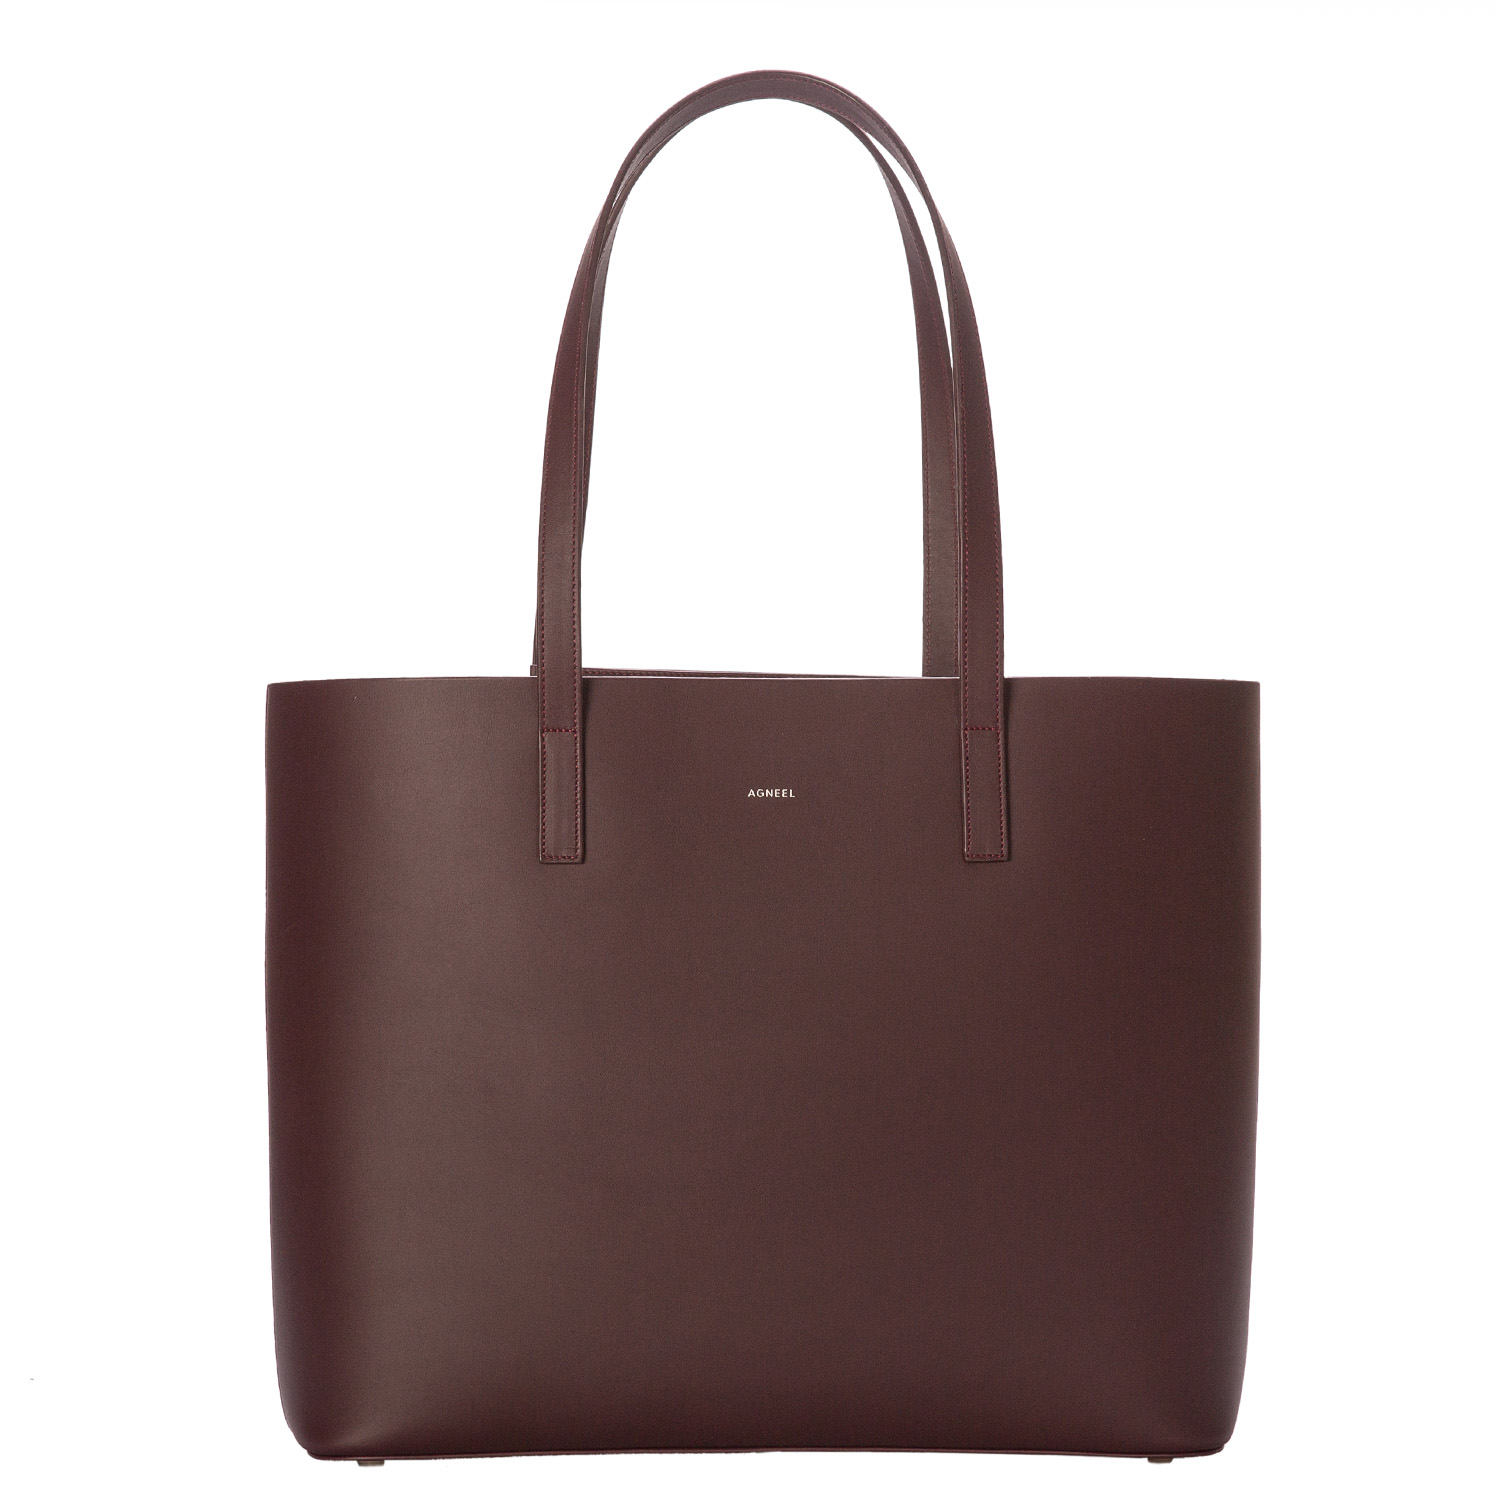 LUCIE SHOPPER IN BABY-CALFSKIN